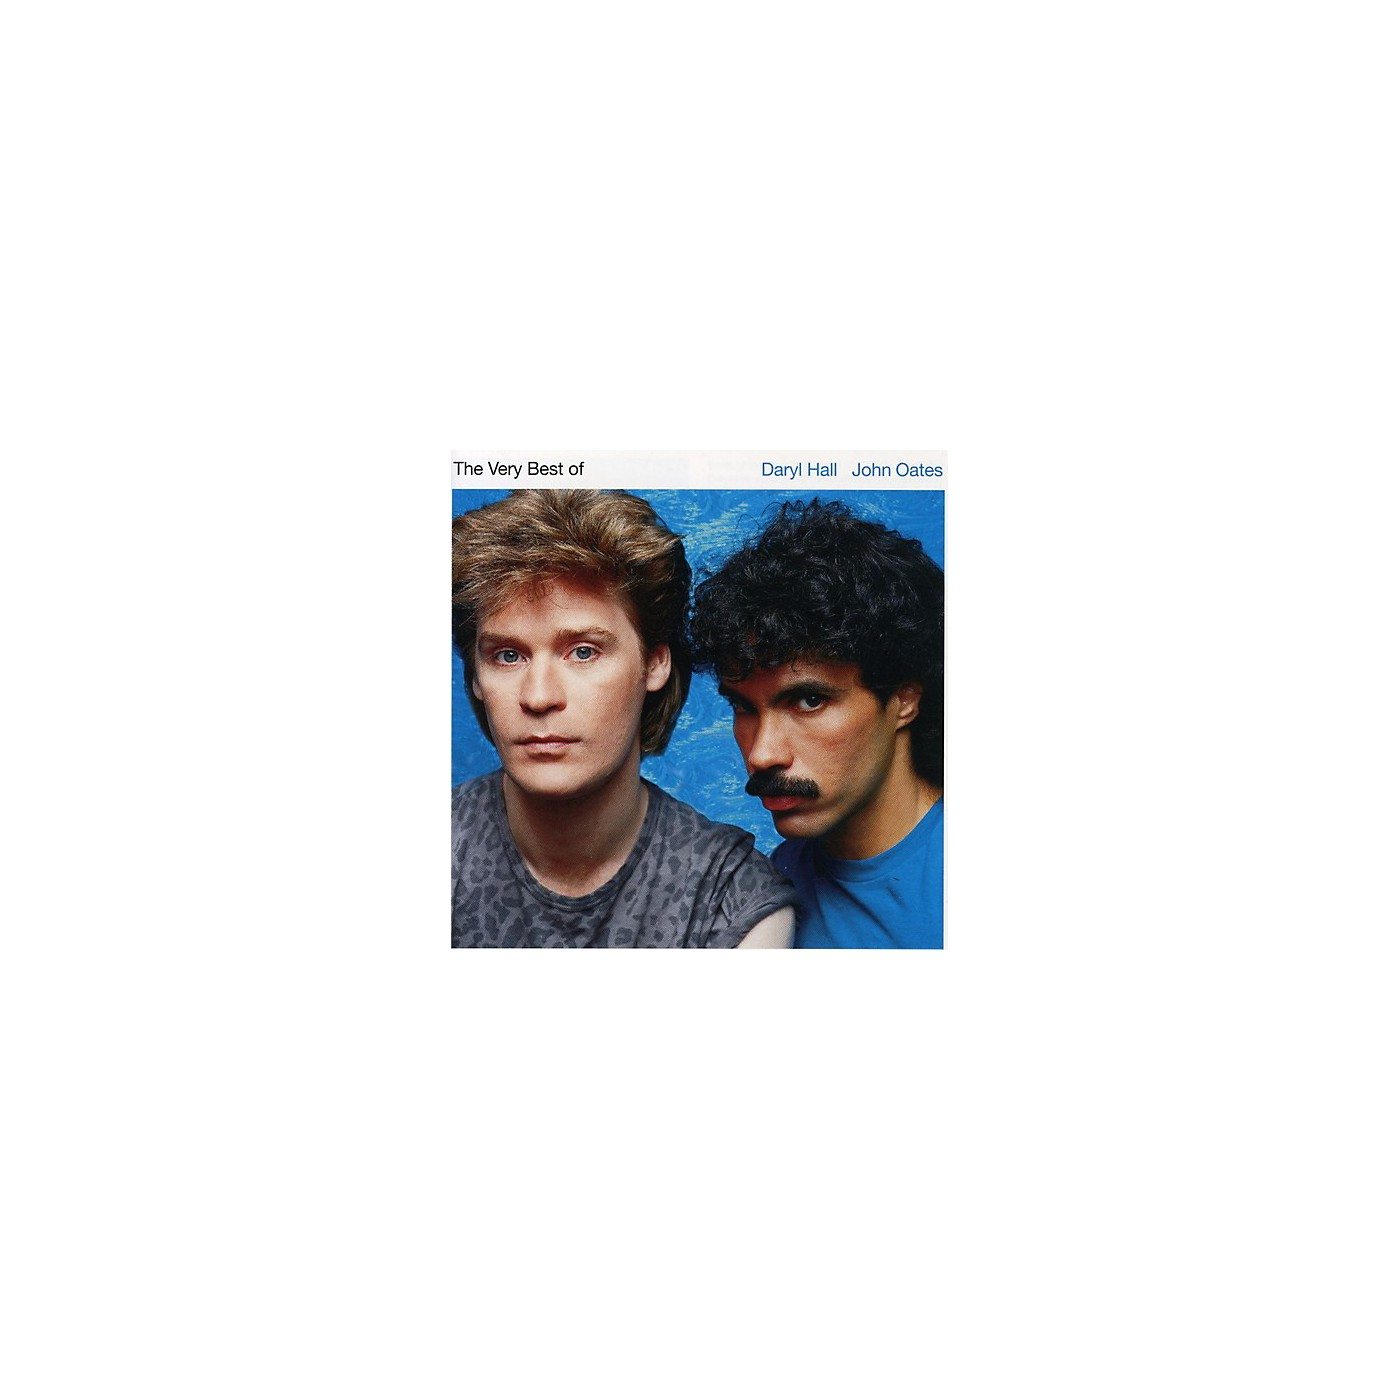 Alliance Hall & Oates - The Very Best Of Daryl Hall and John Oates (CD) thumbnail